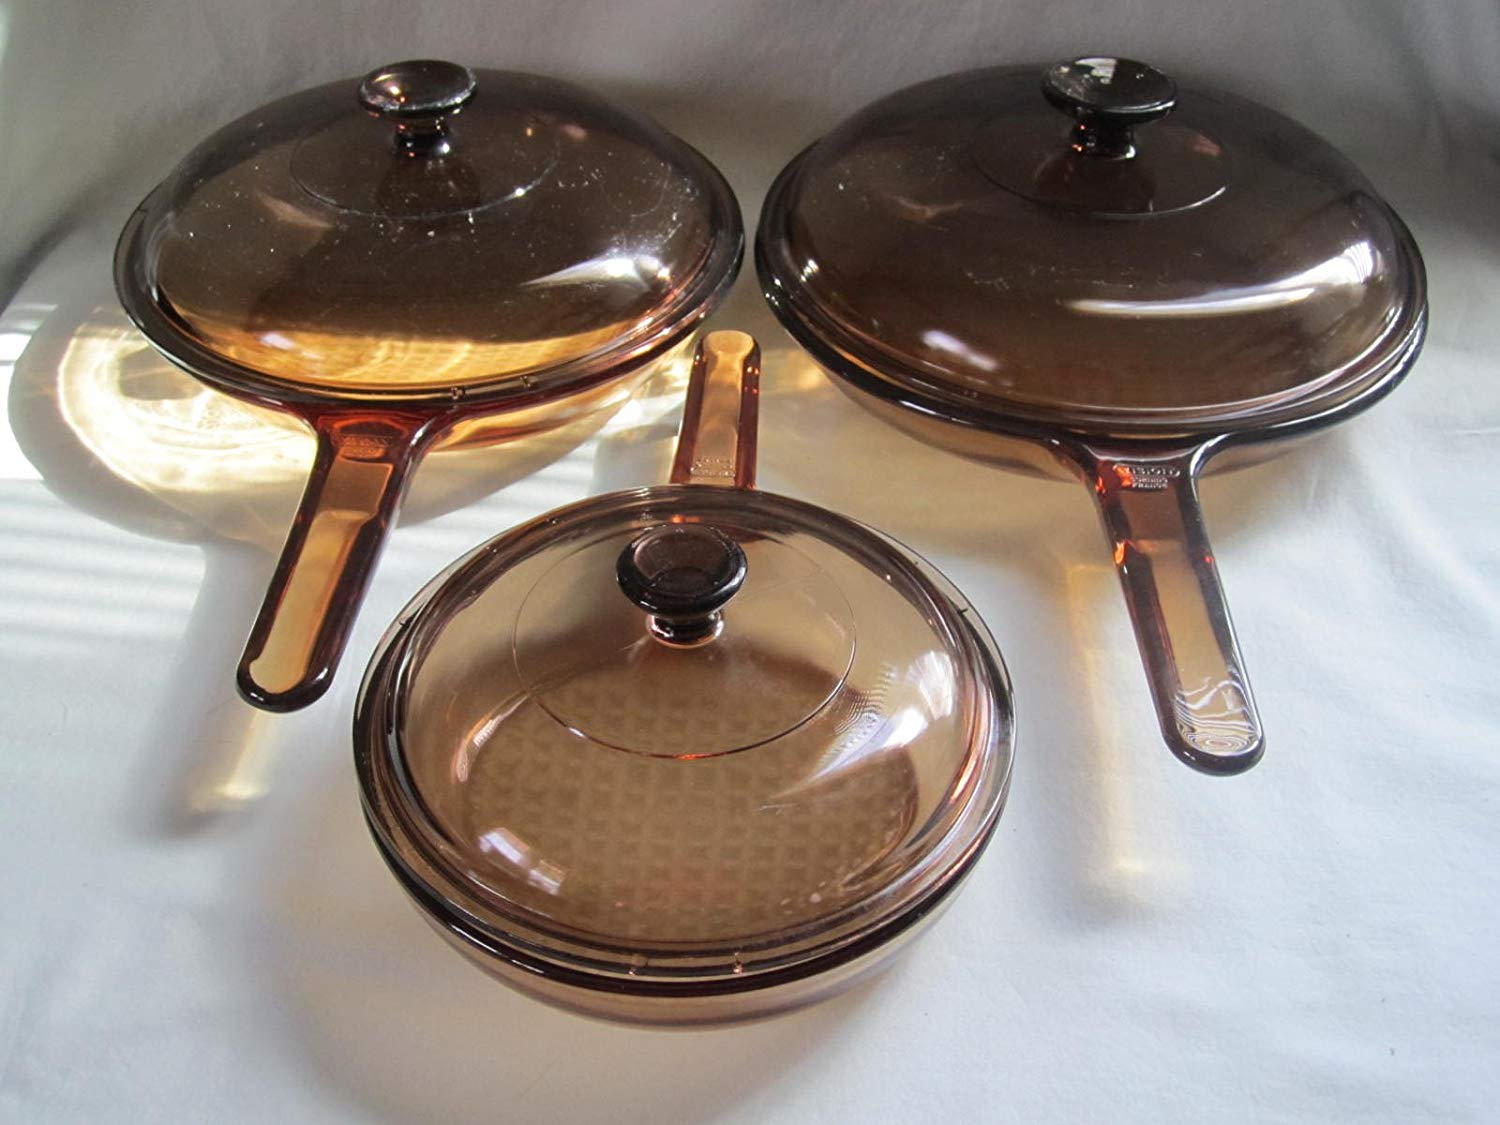 Set of 3 - Vintage 1980s Corning Visions Visionware Amber Glass Frying Pan Skillets w/ Lids ( 7 Inch, 9 Inch, 10 Inch )